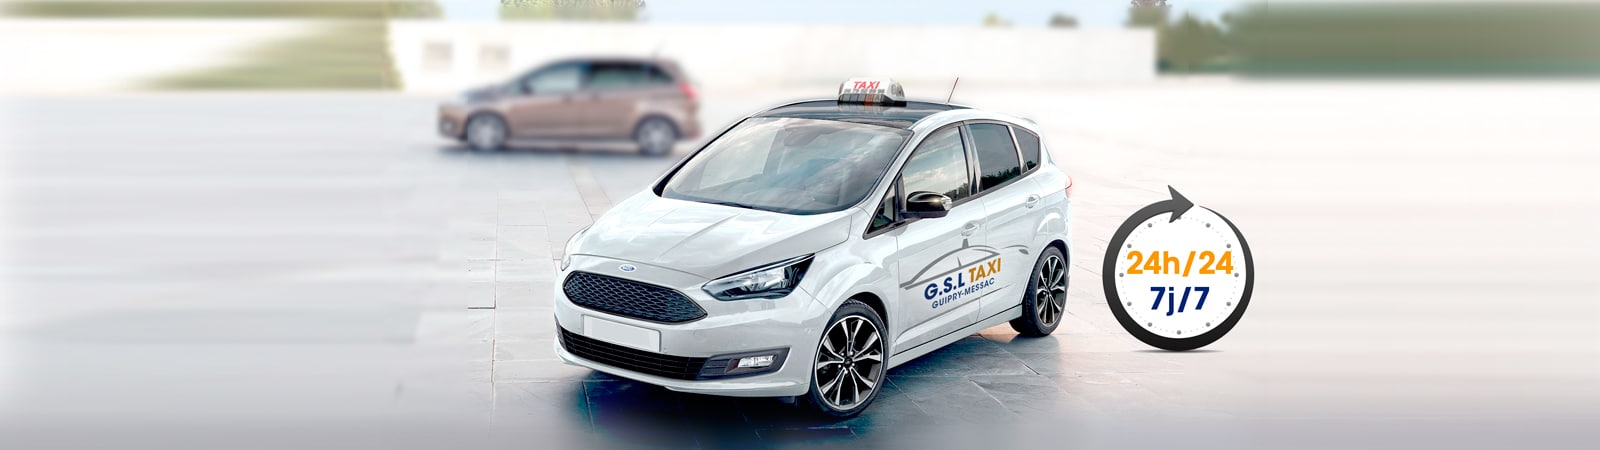 gsl taxi rennes guipry